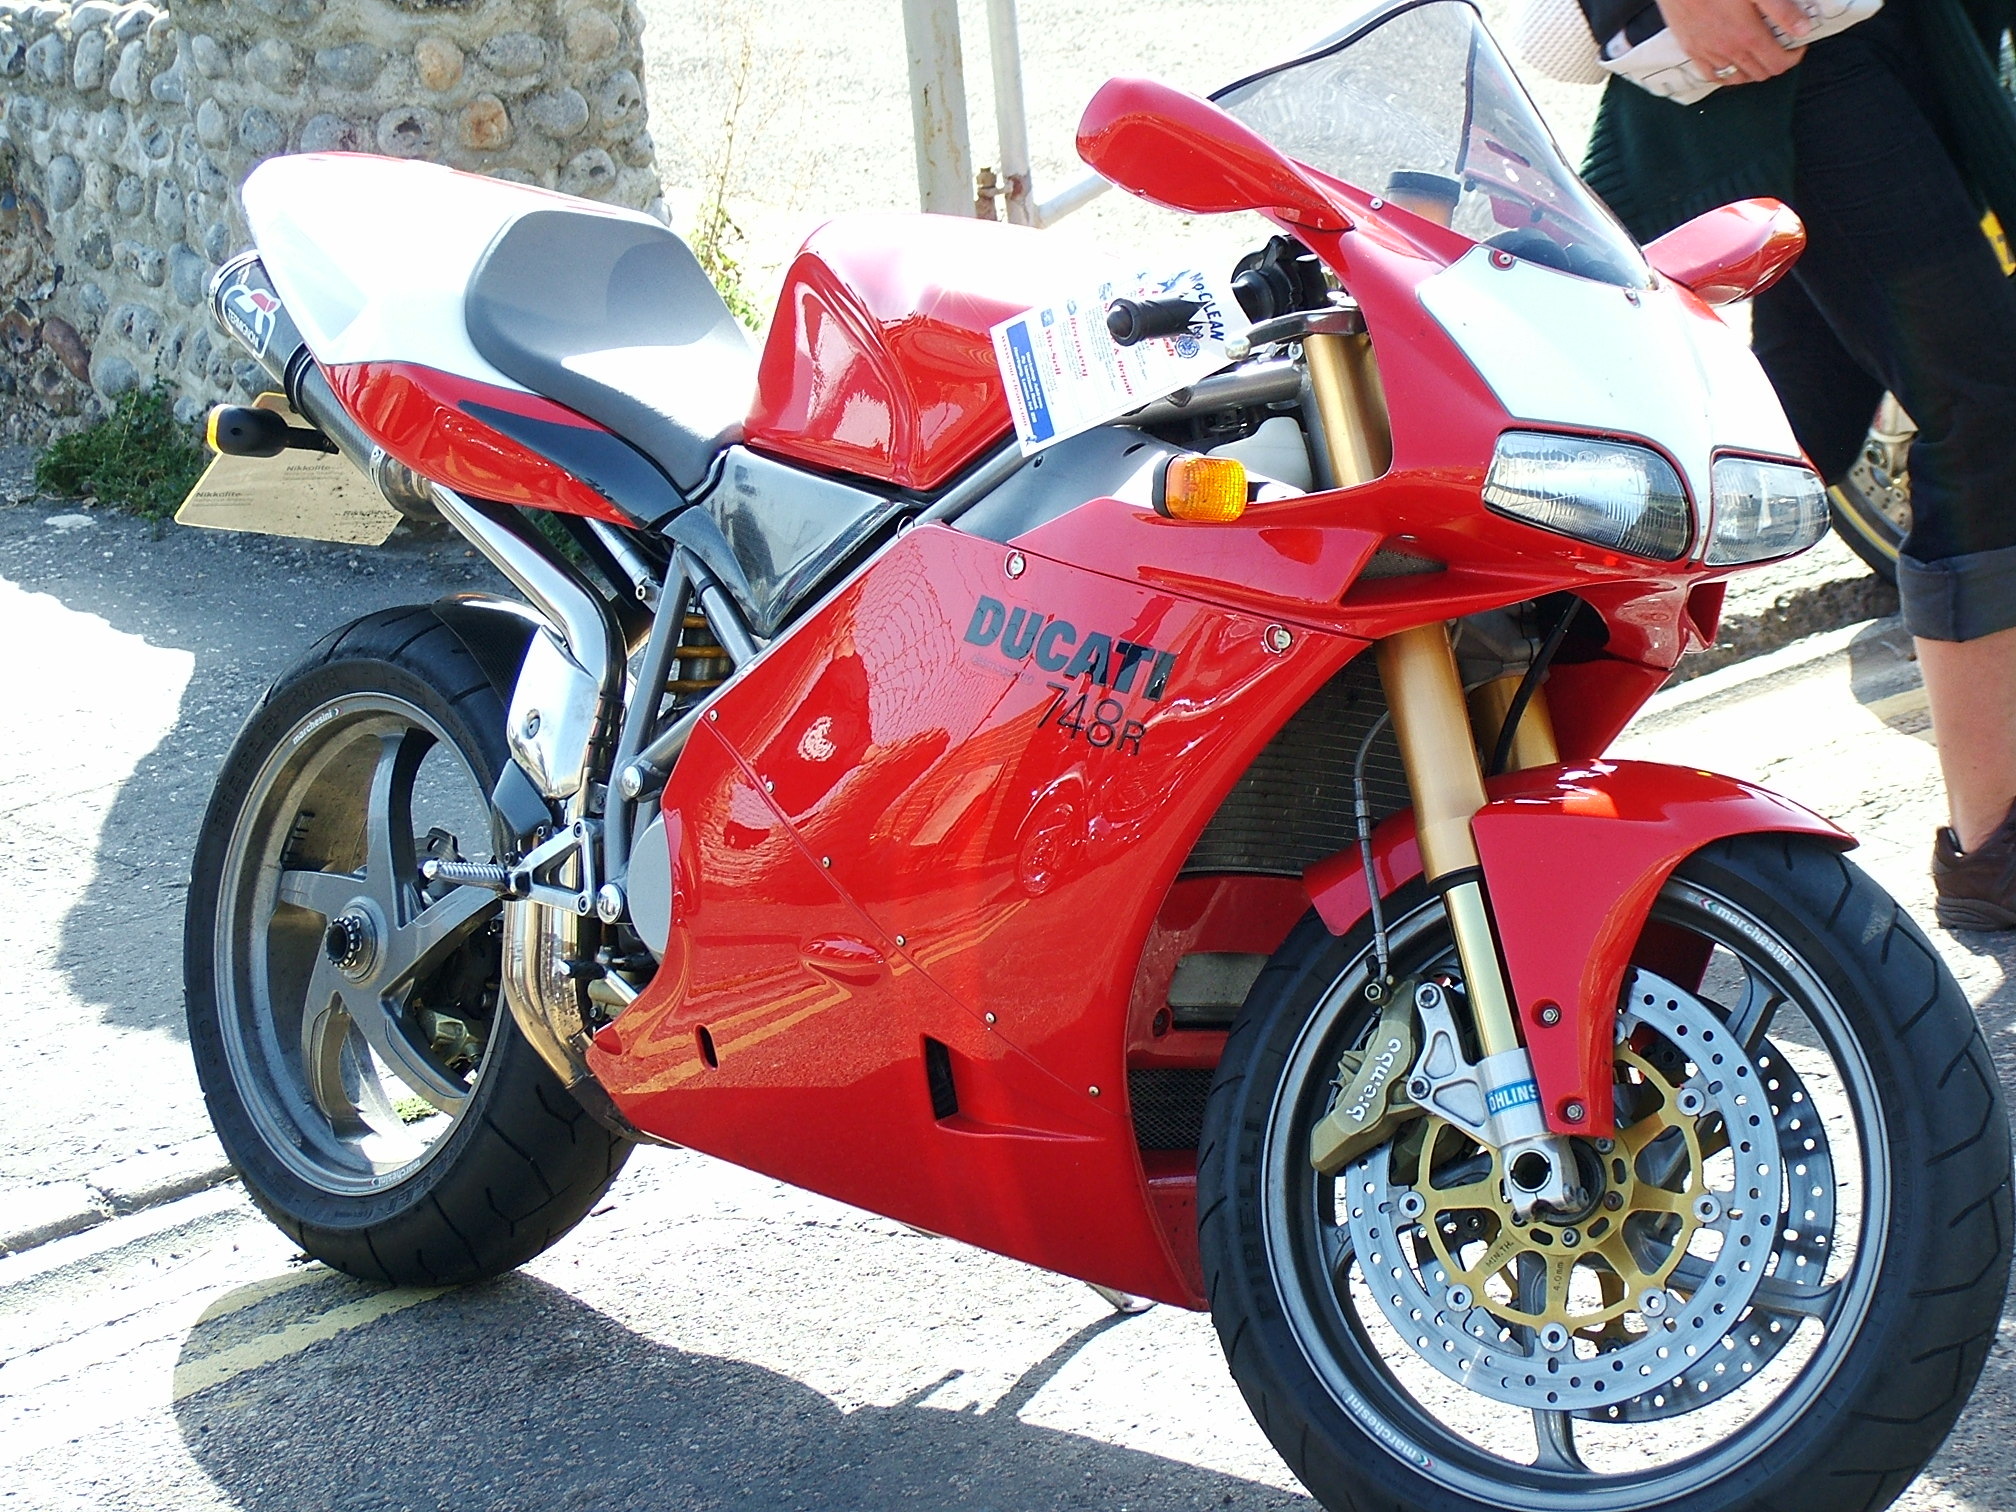 Ducati 998 R wallpapers #11171